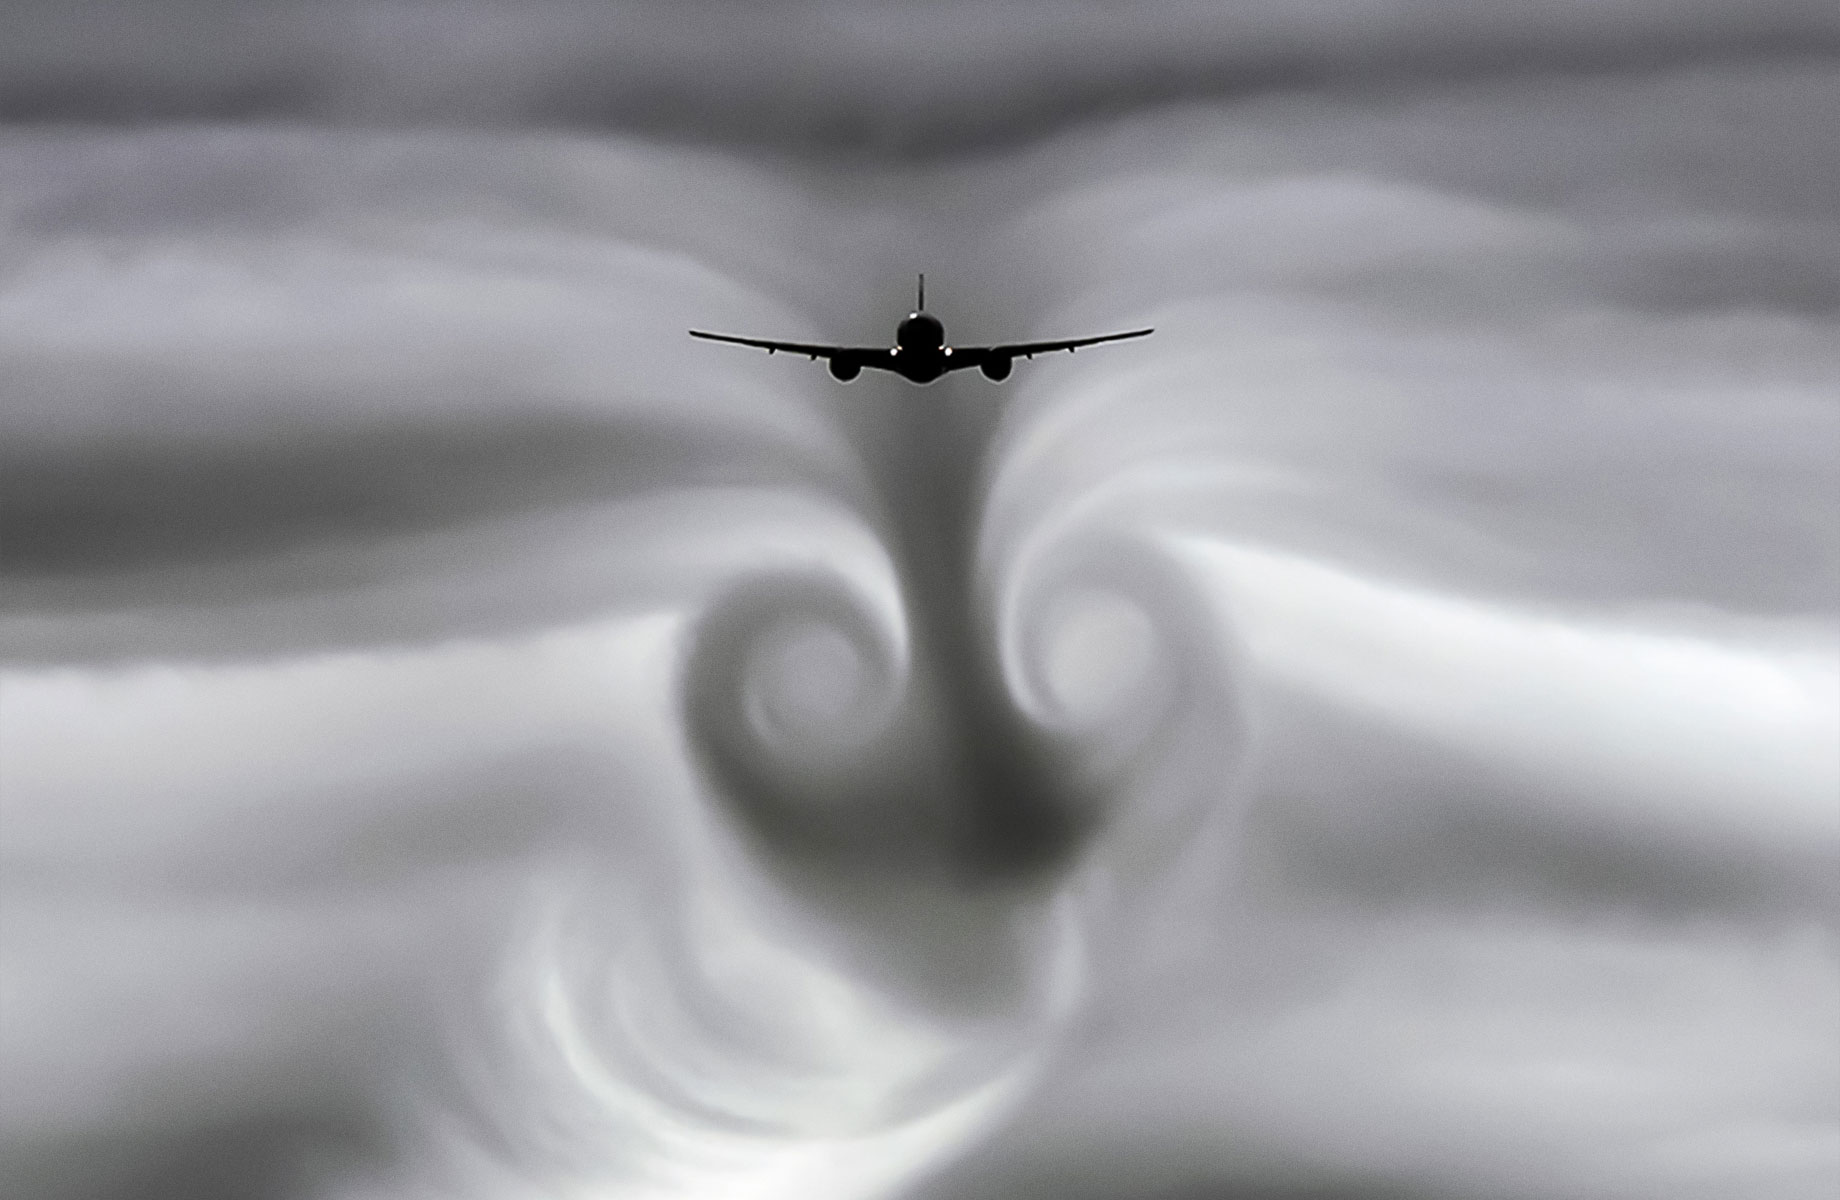 An airplane wing creates vortex rings